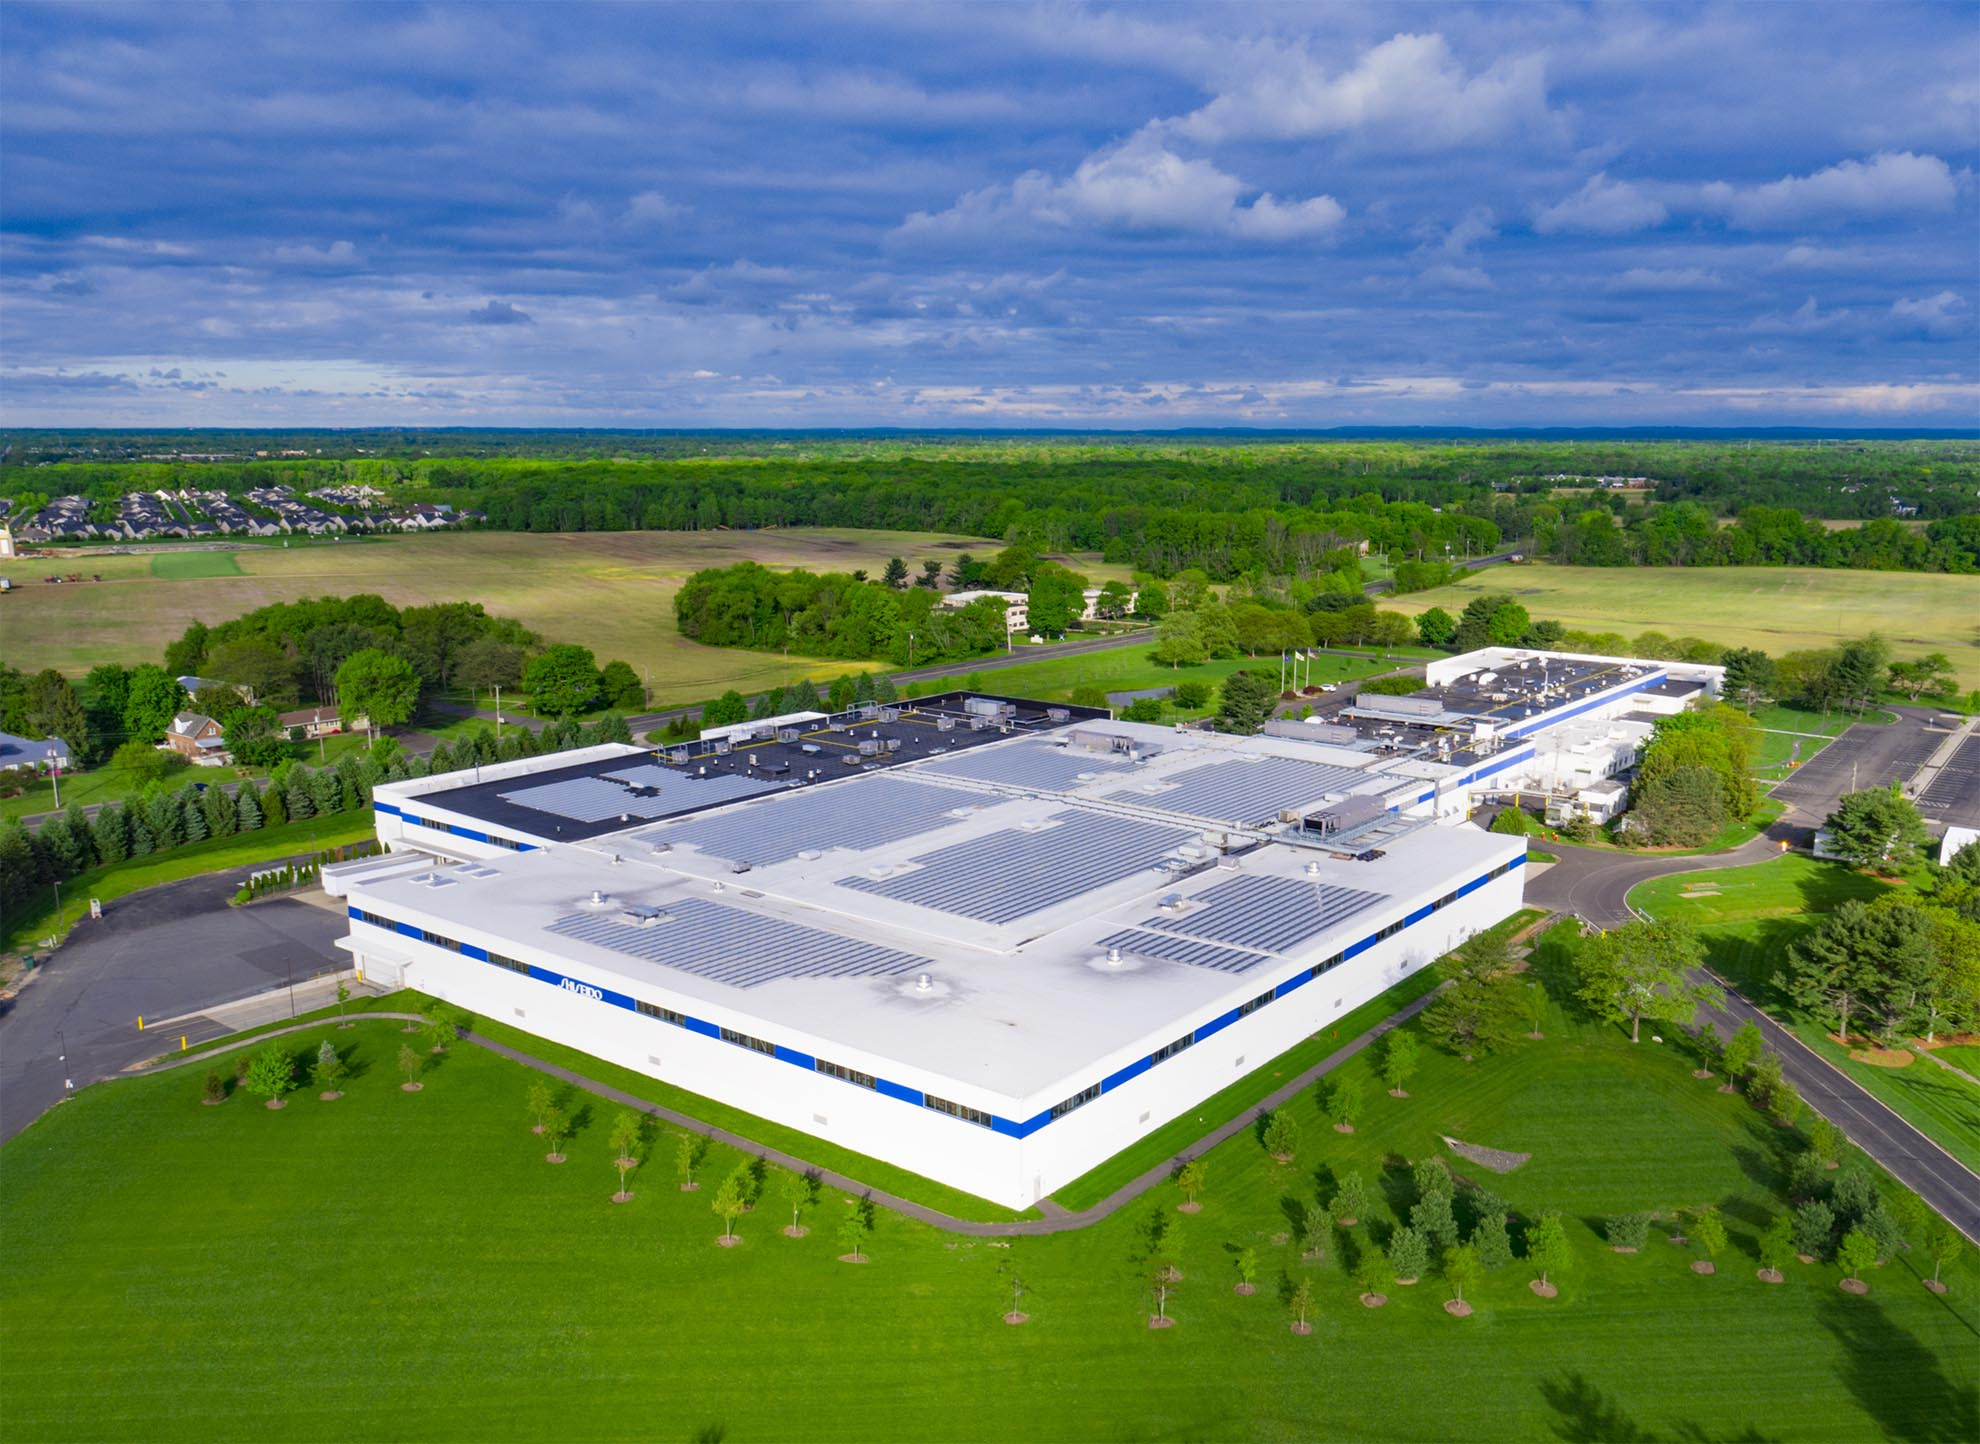 Drone photograph of Shiseido production facility in New Jersey